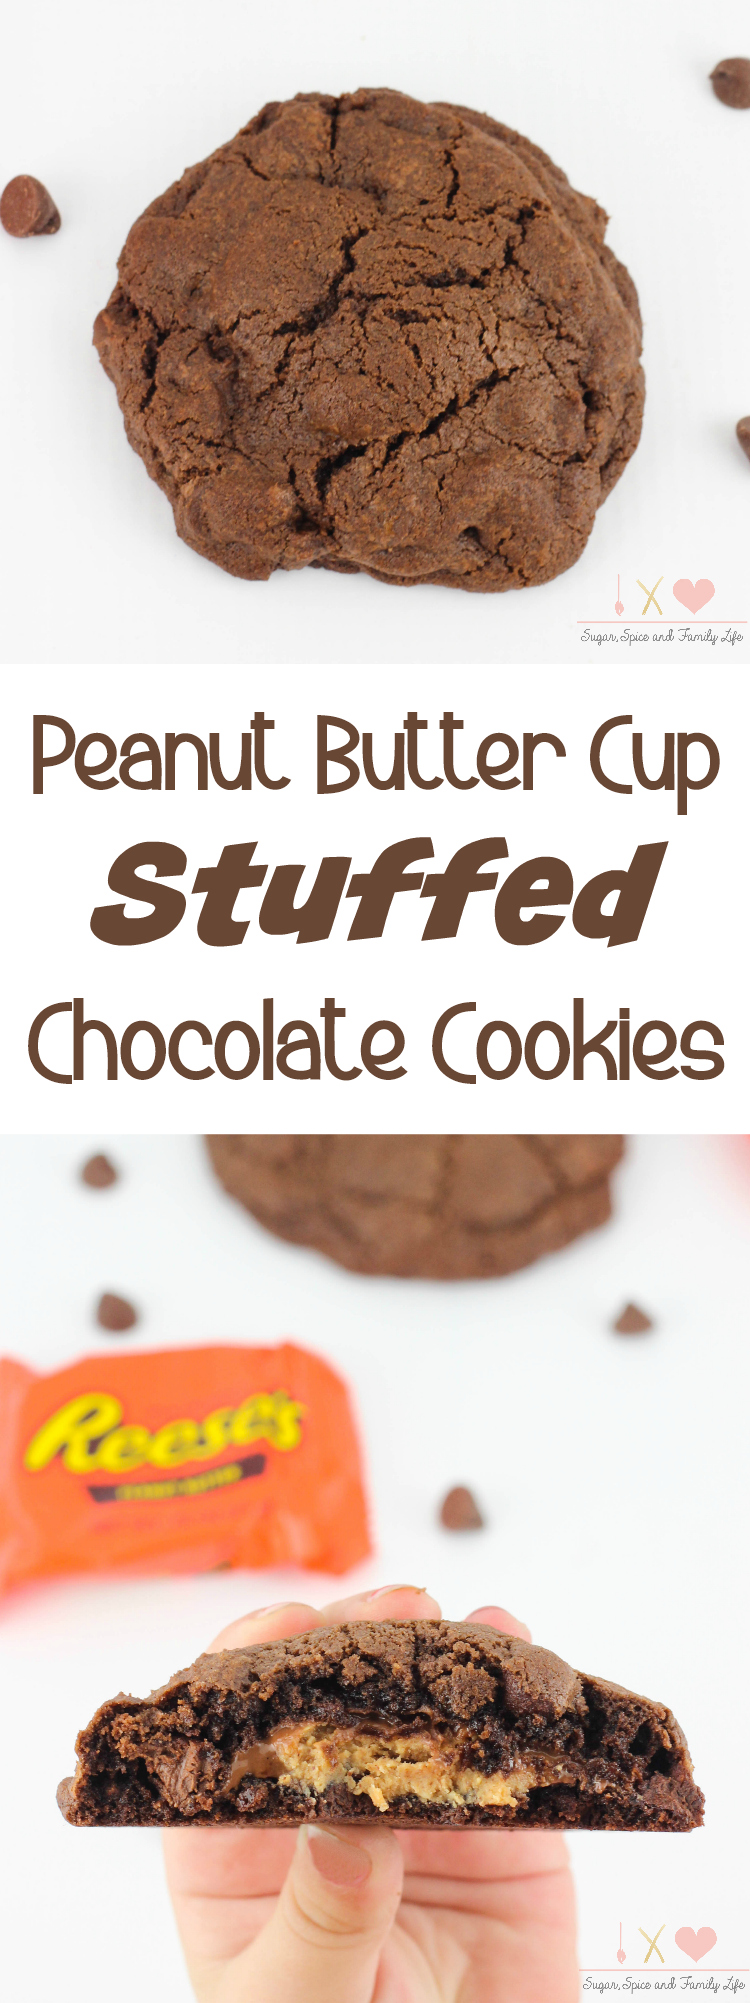 Peanut Butter Cup Stuffed Chocolate Cookies Recipe